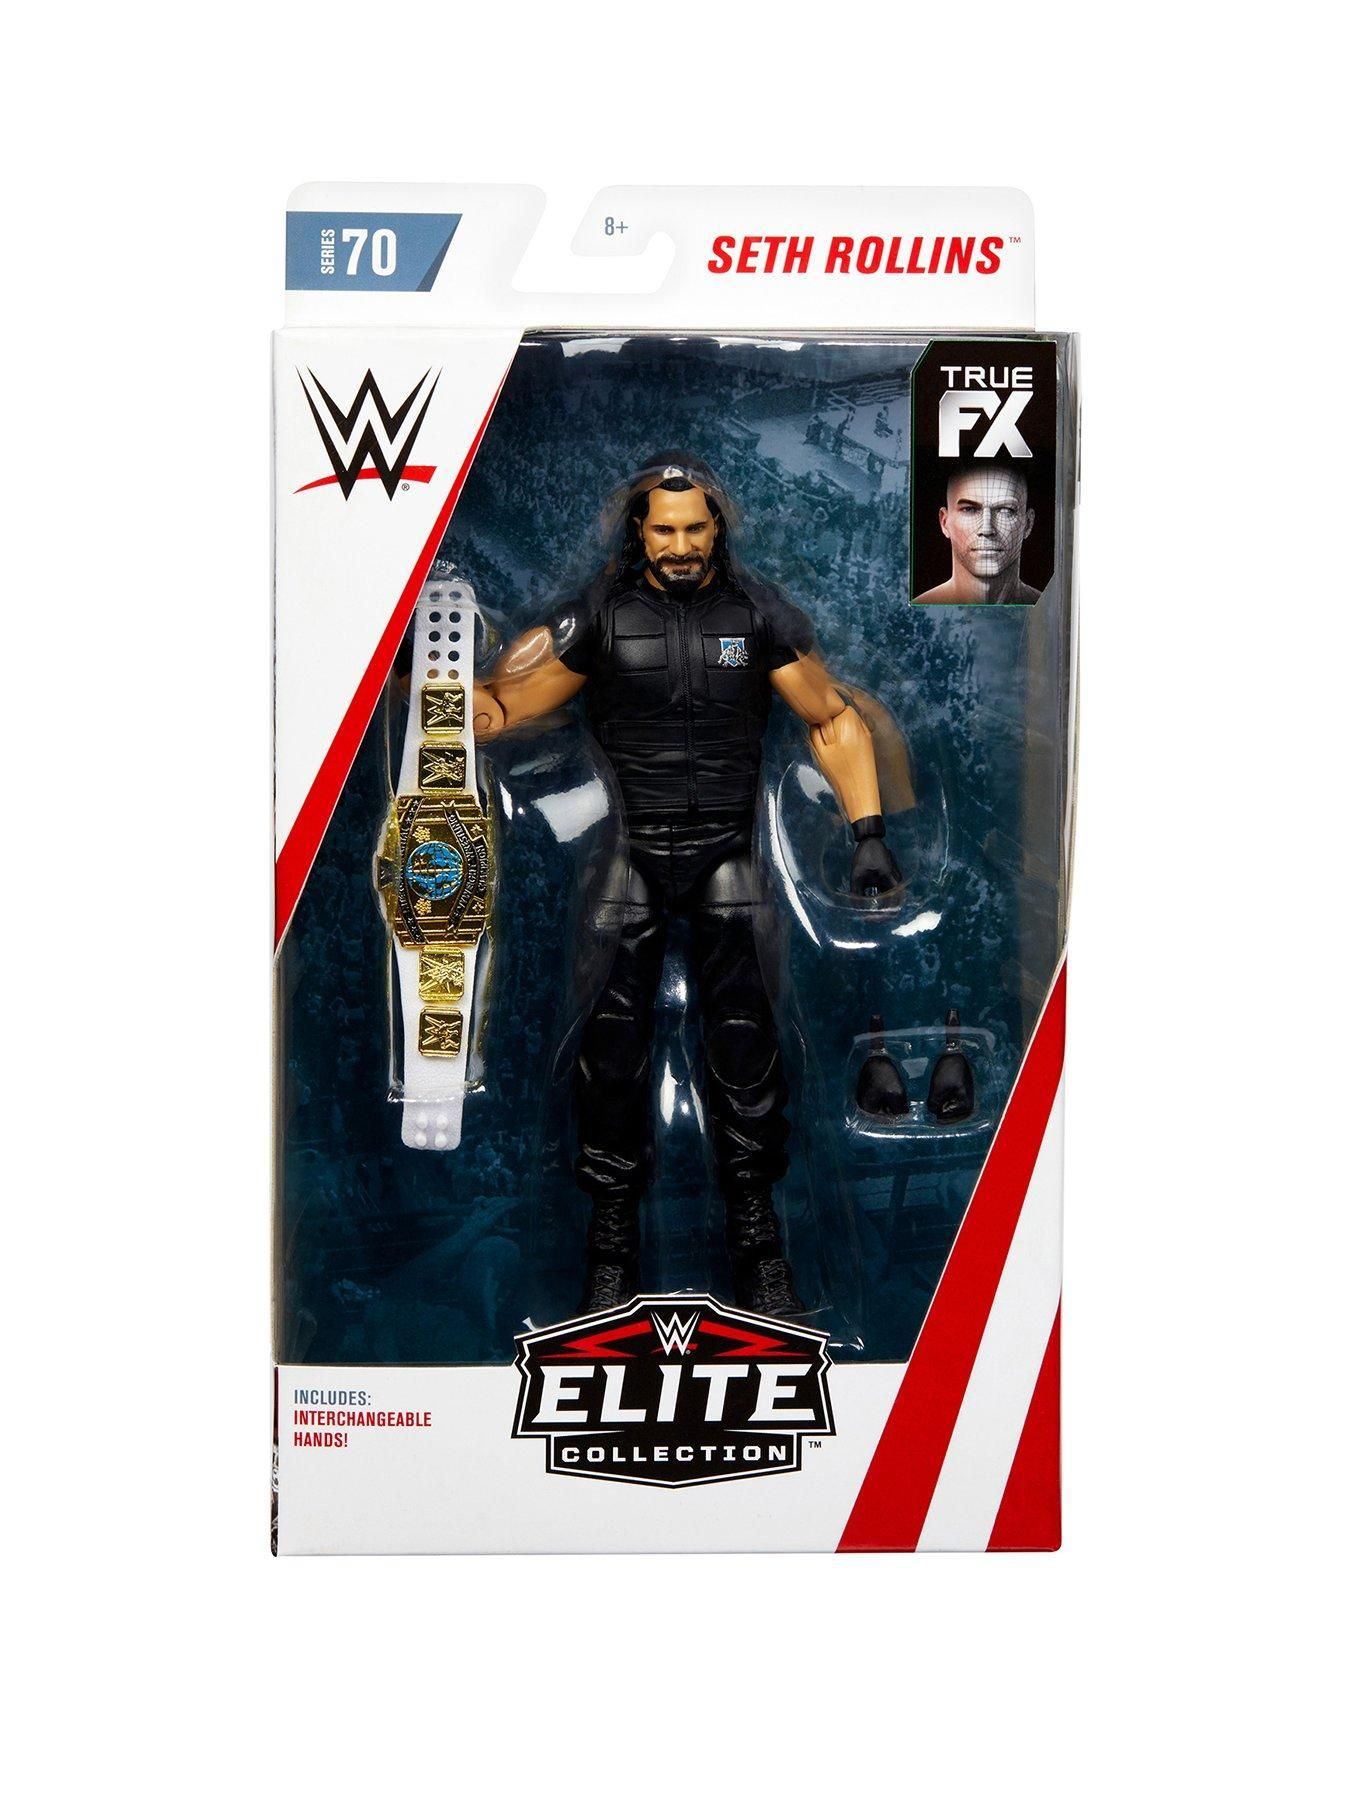 Pin on wwe figures I want